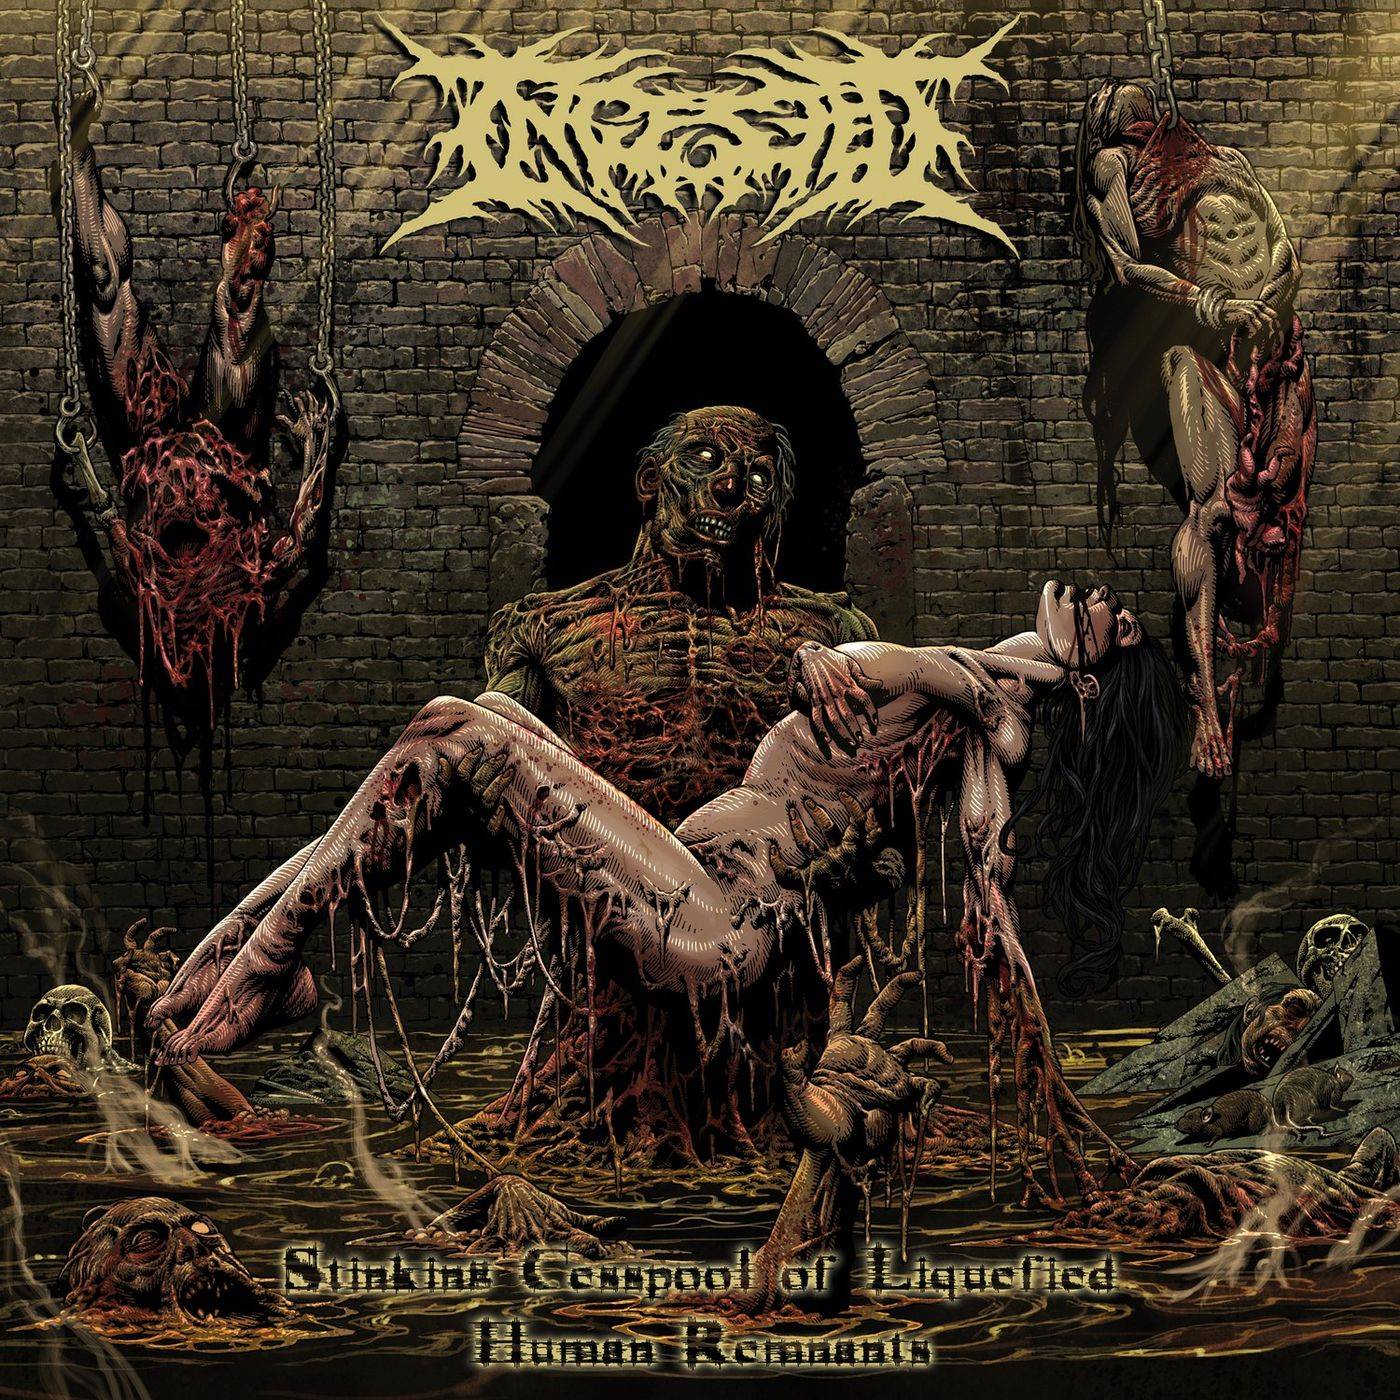 Ingested - Stinking Cesspool of Liquified Human Remnants [EP] (2020 Remaster)